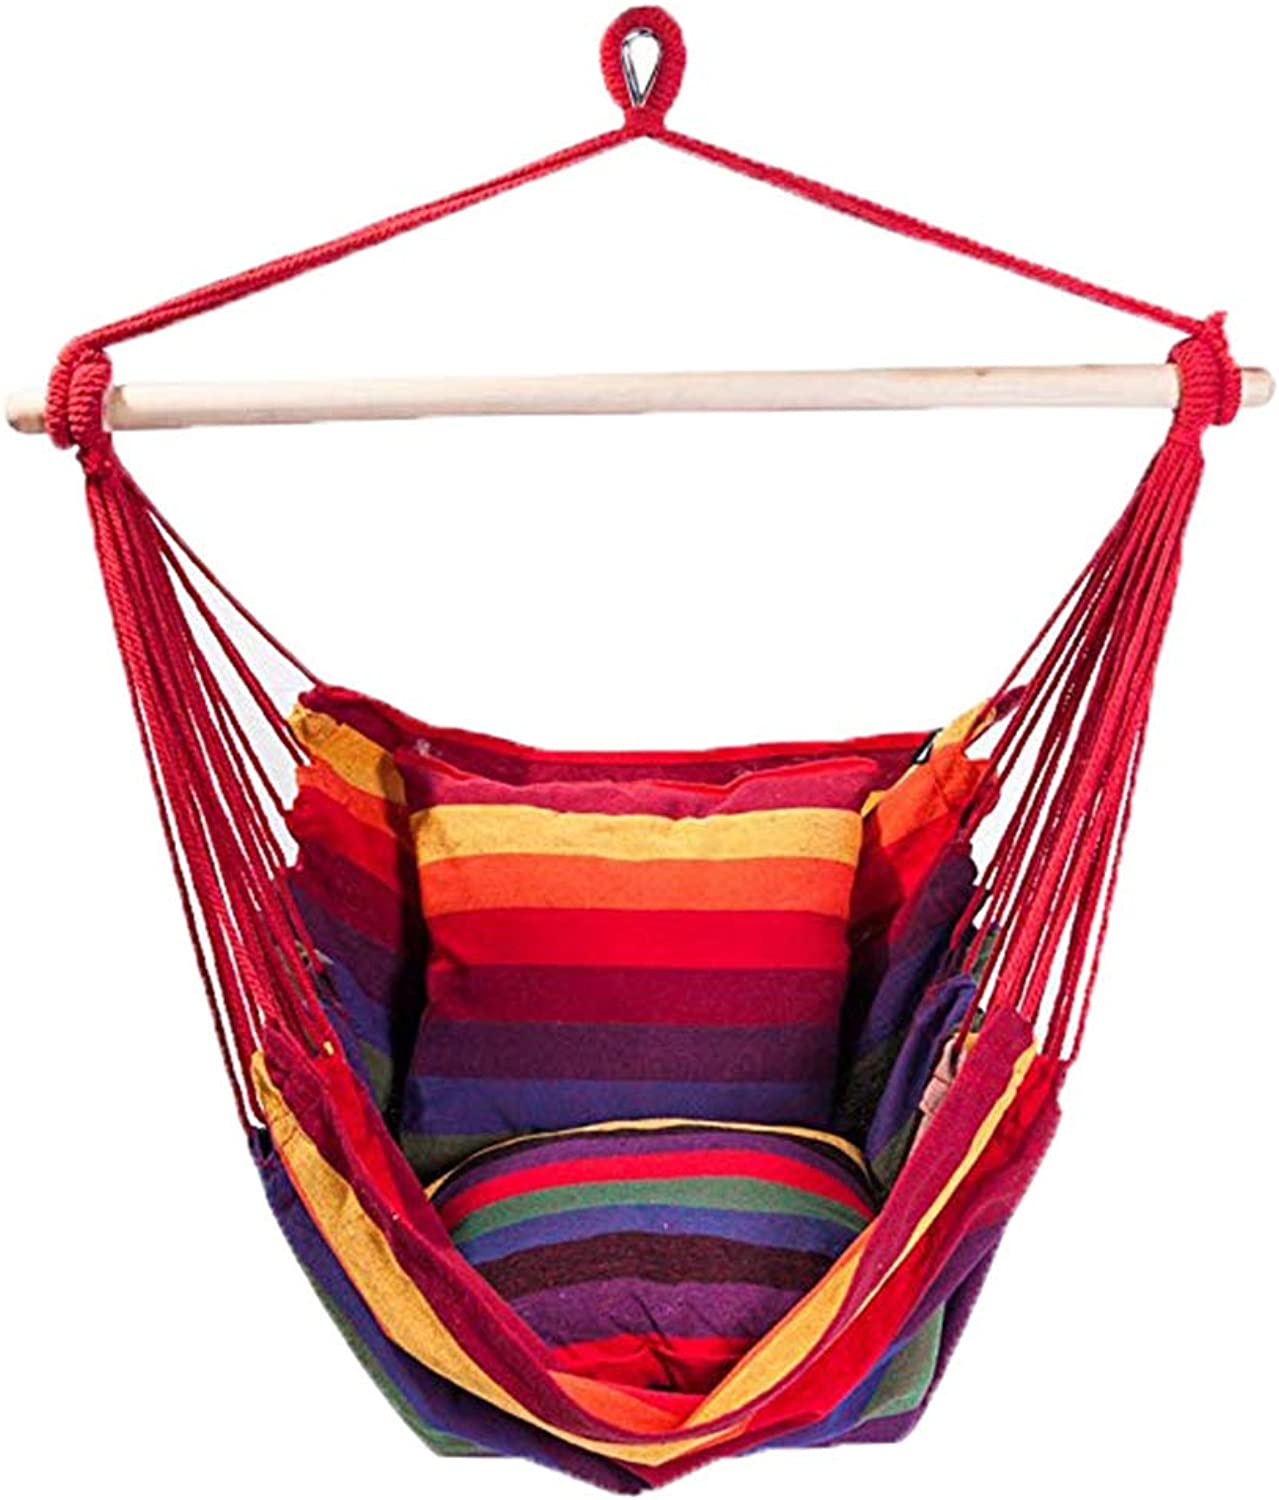 Deluxe Padded Cotton Hammock Hanging Chair Indoor Outdoor Use- Rainbow Multicolor